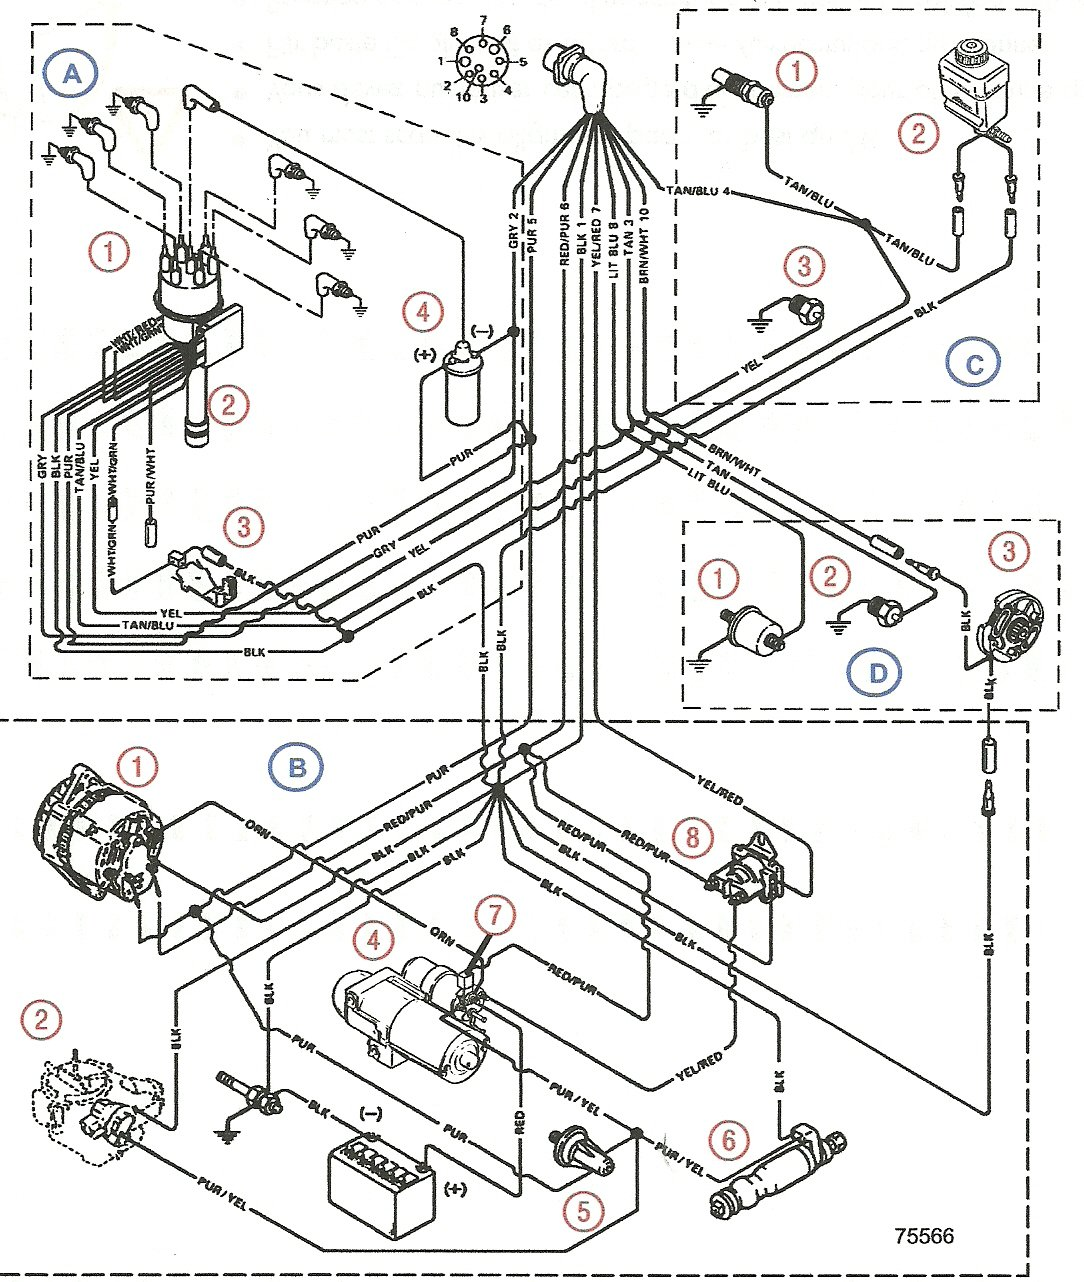 Wiring Diagram 4.3 Mercruiser